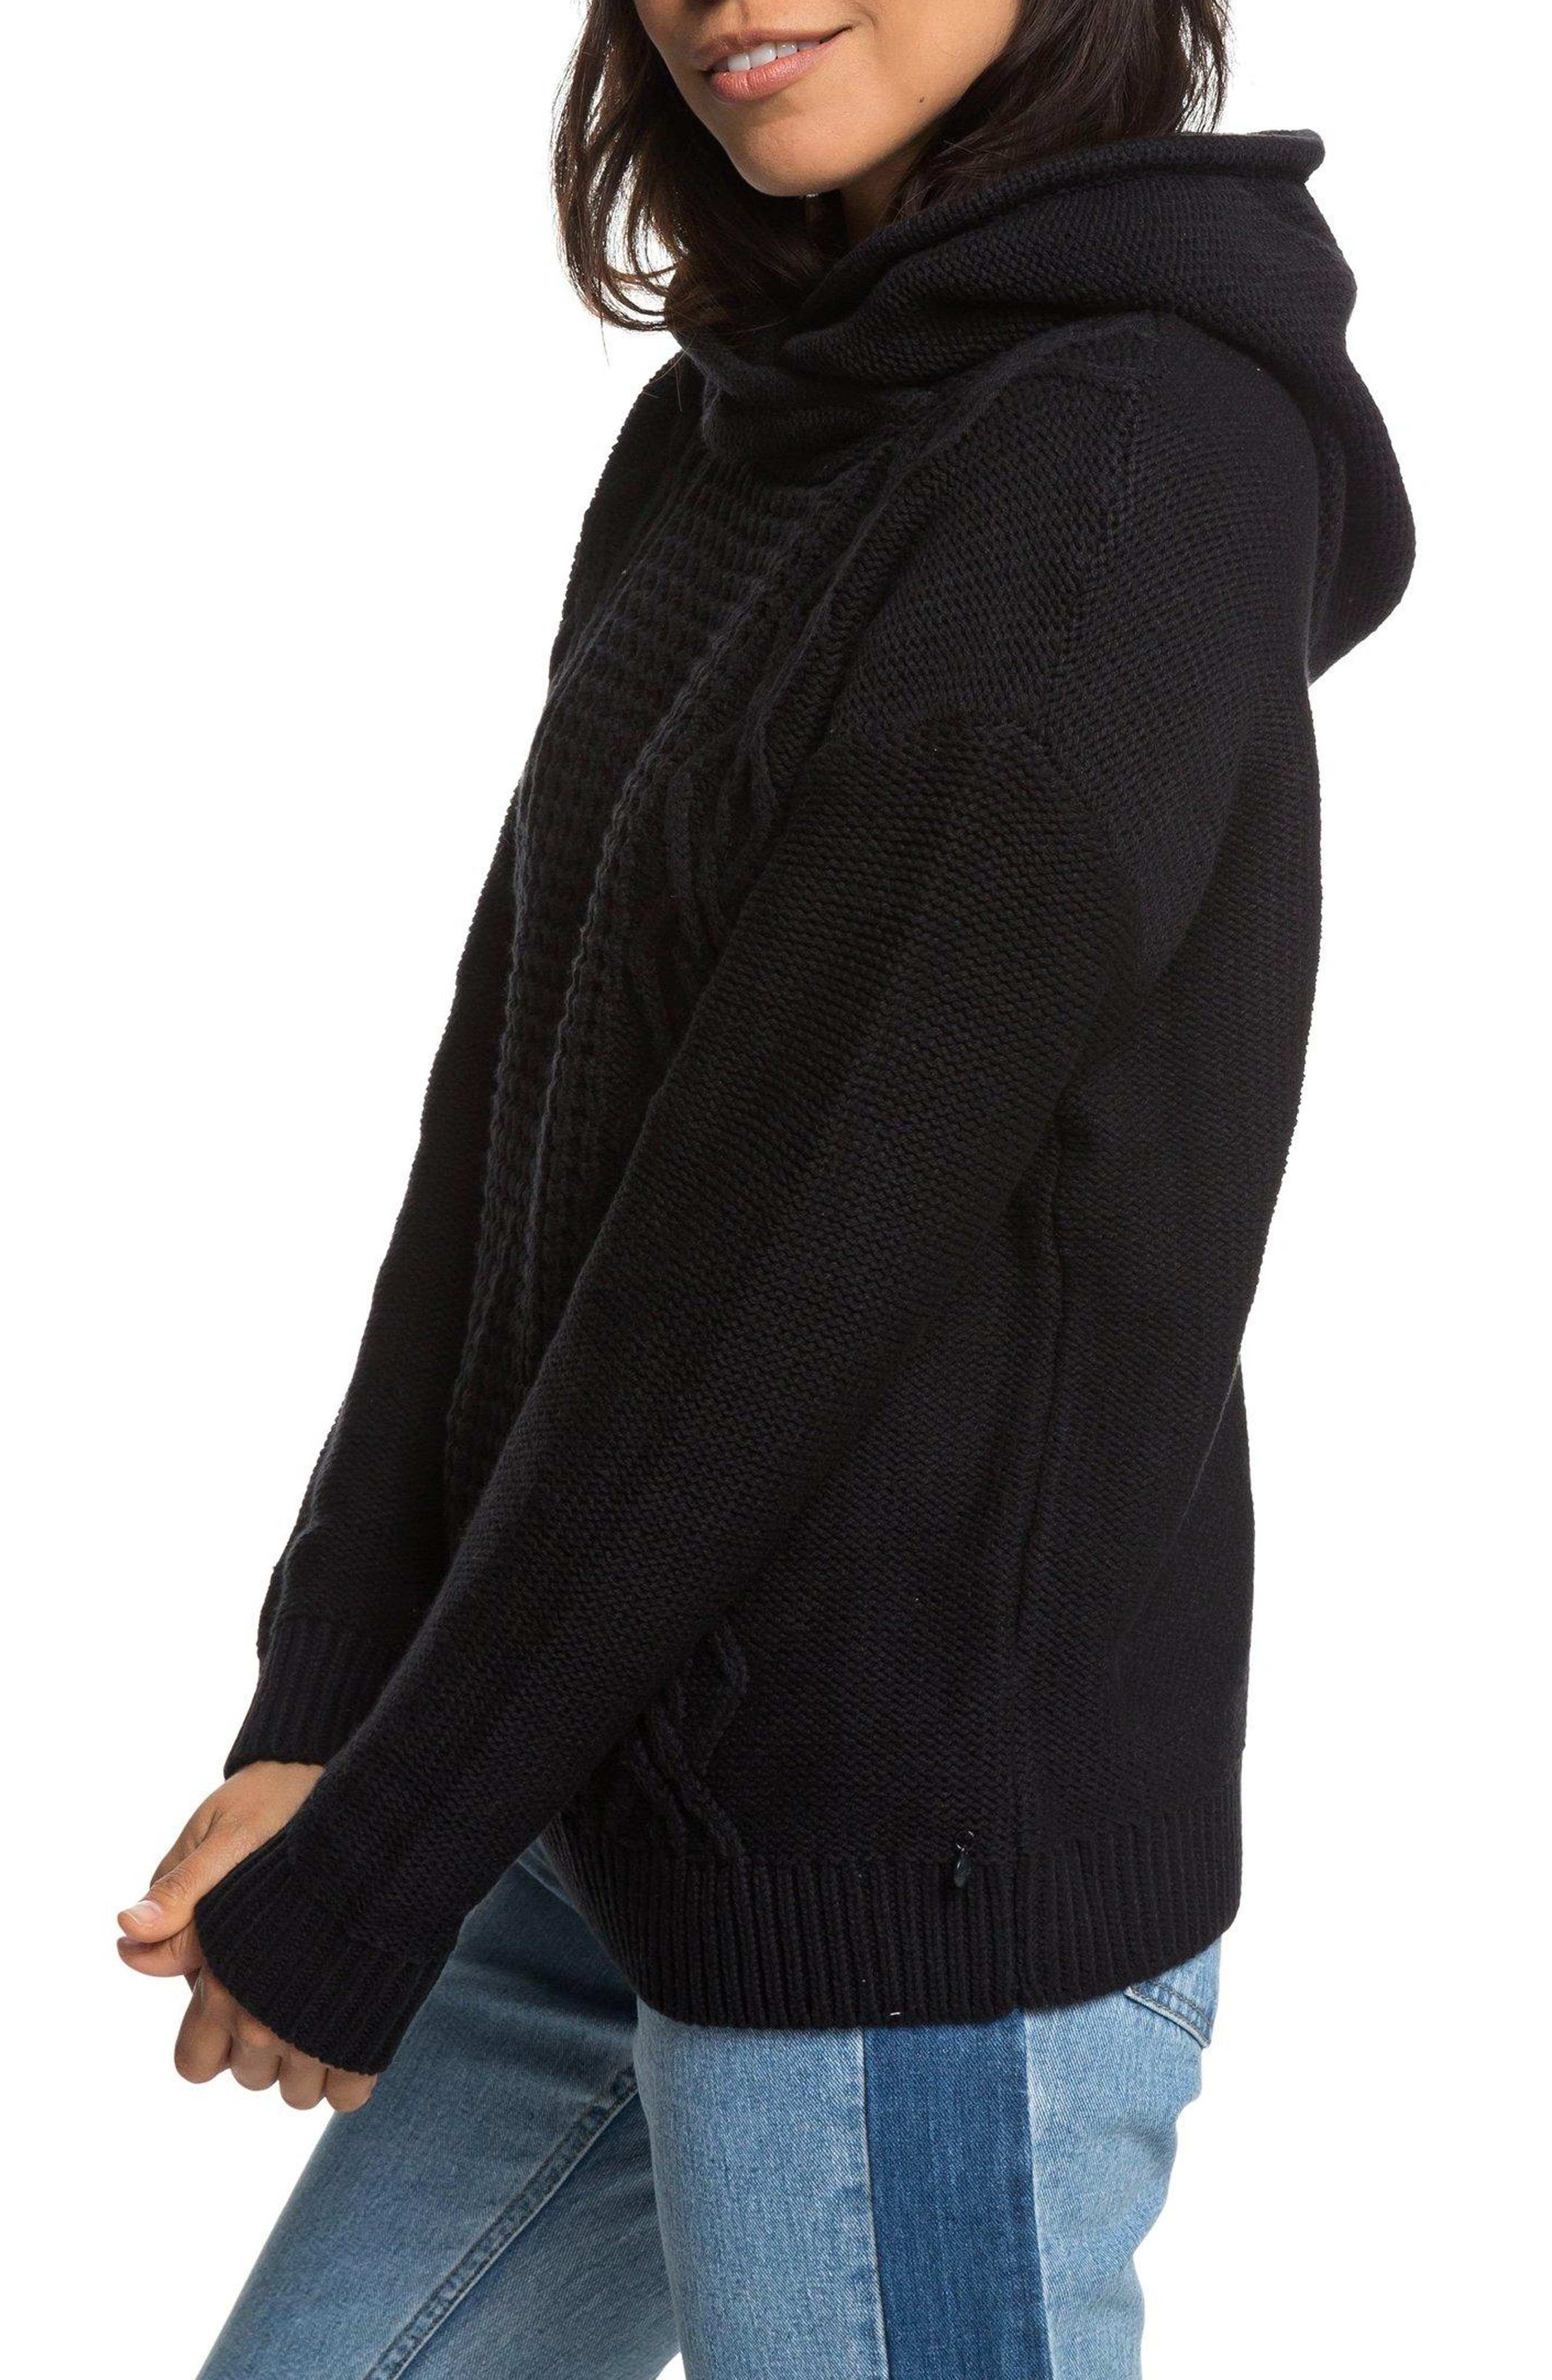 Off to Dinner Hooded Sweater,                             Alternate thumbnail 3, color,                             001